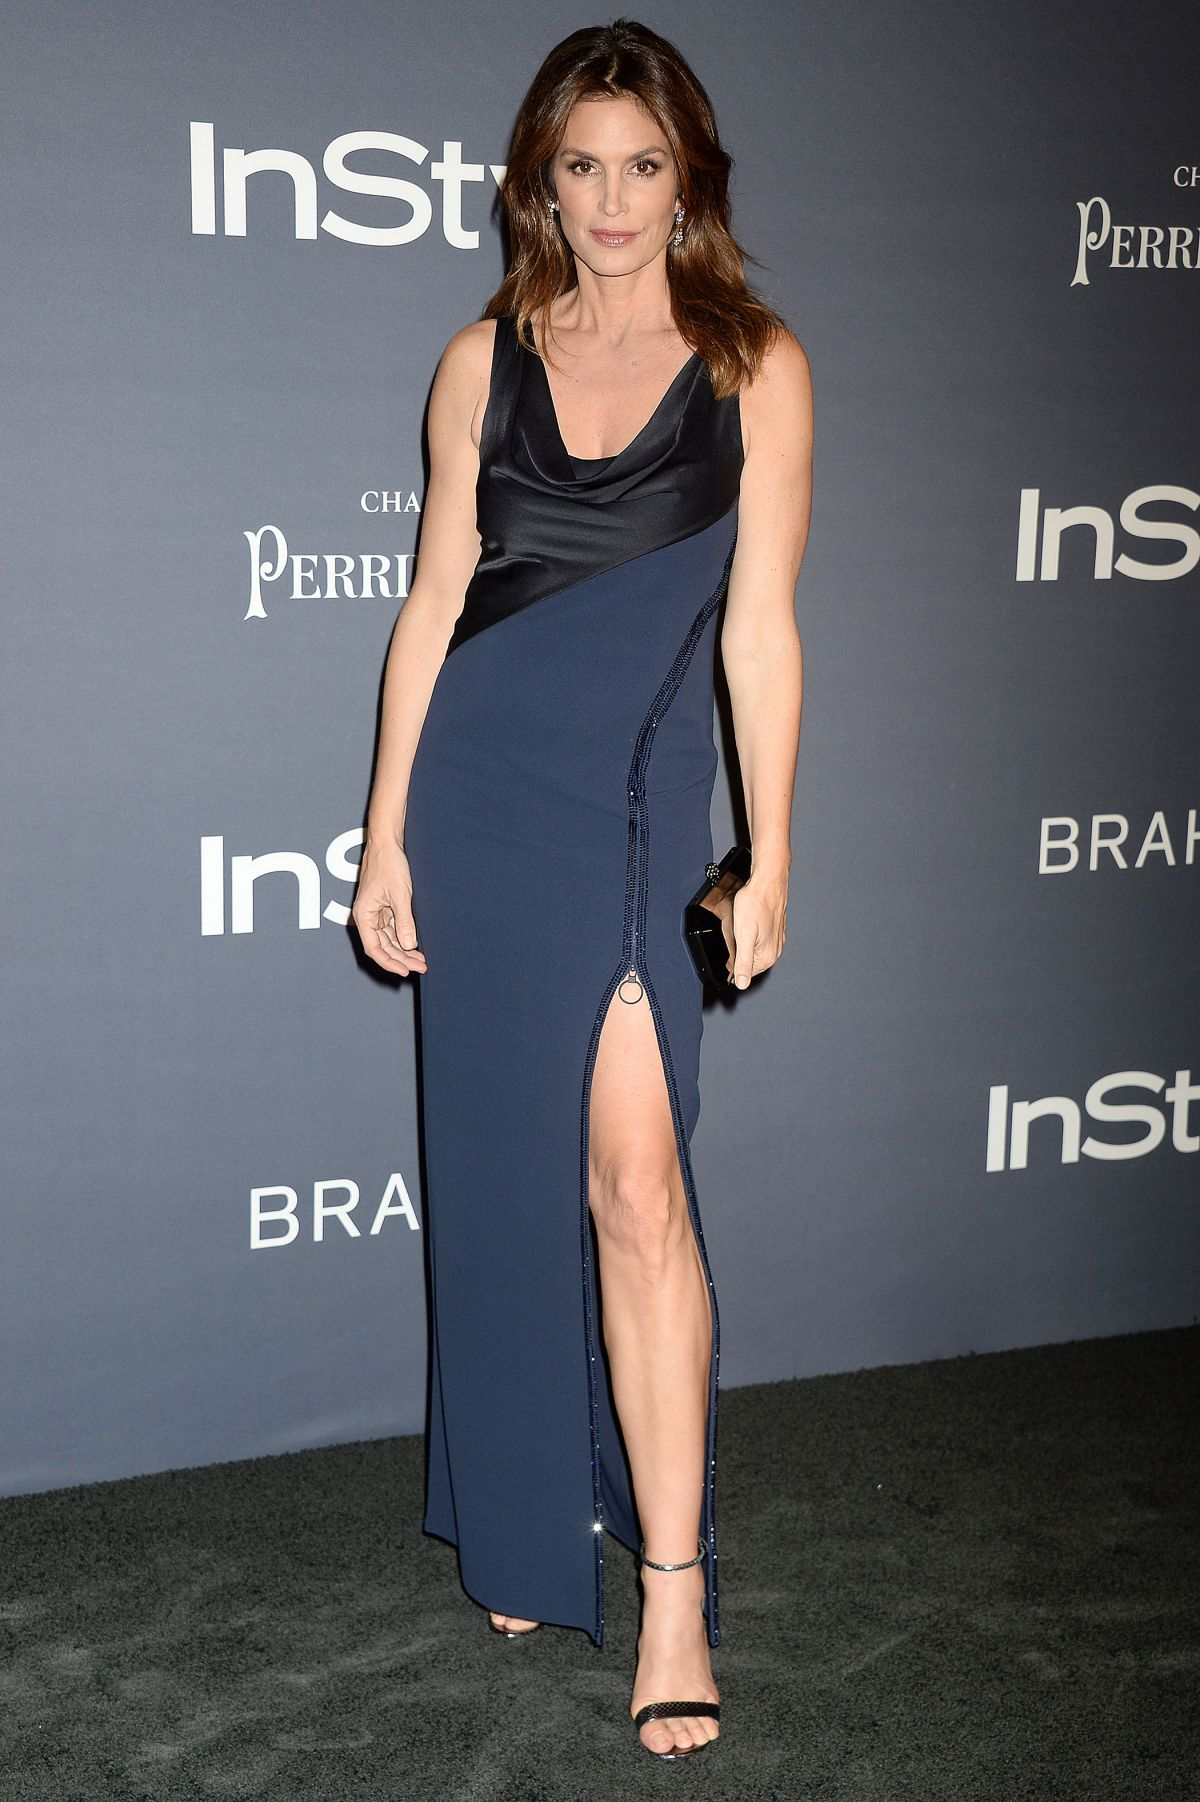 Cindy Crawford At 3rd Annual InStyle Awards at The Getty Center in Los Angeles